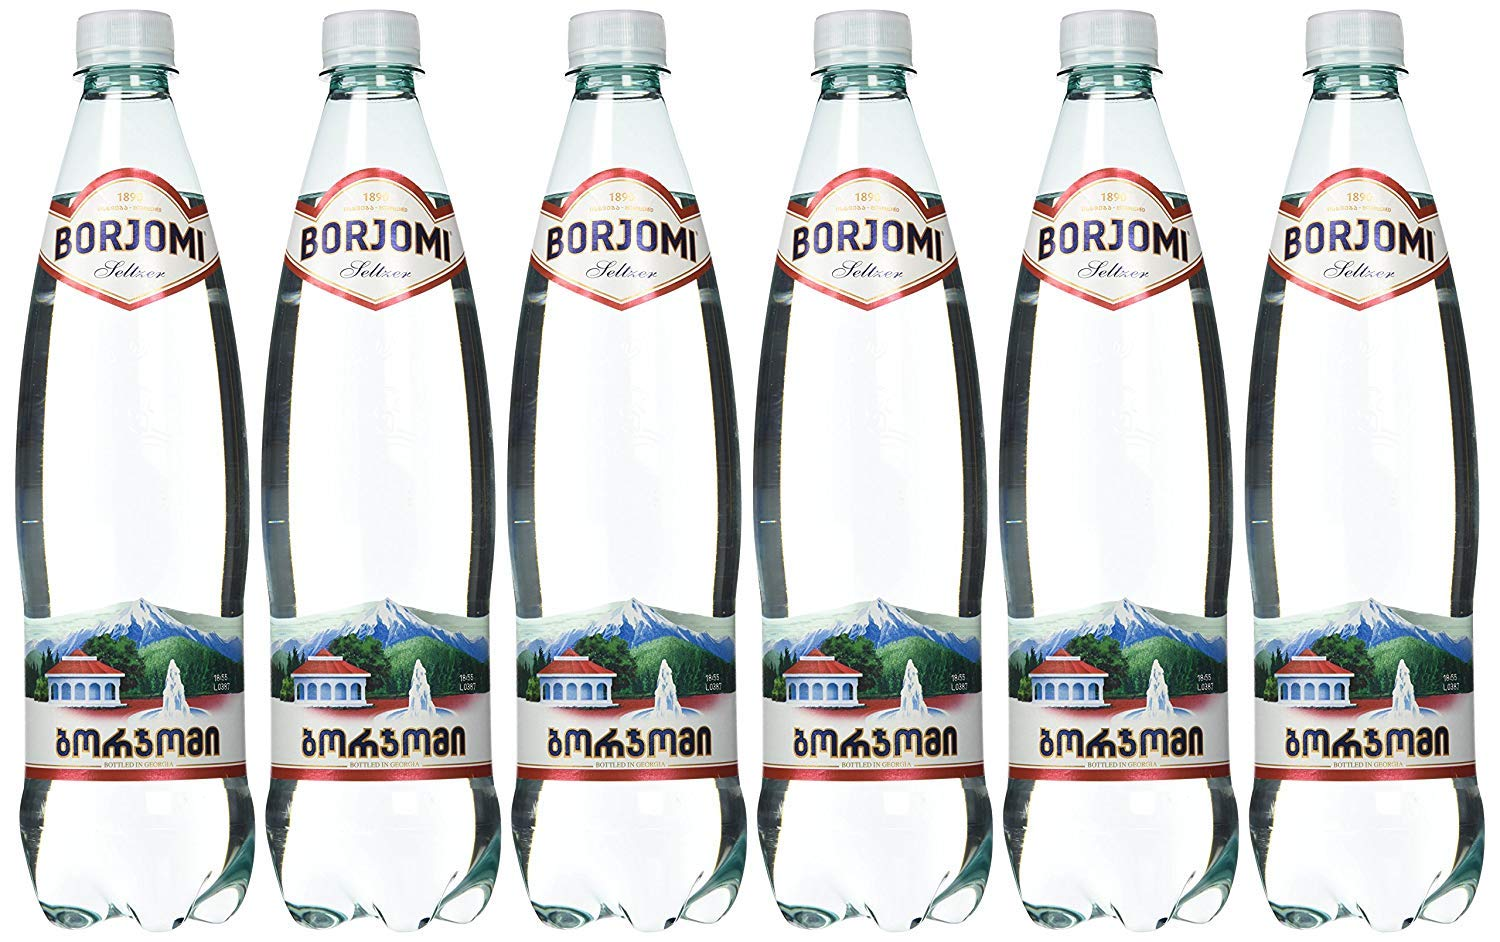 Borjomi Mineral Water from Georgia 0.75l (1 case) 6 bottles